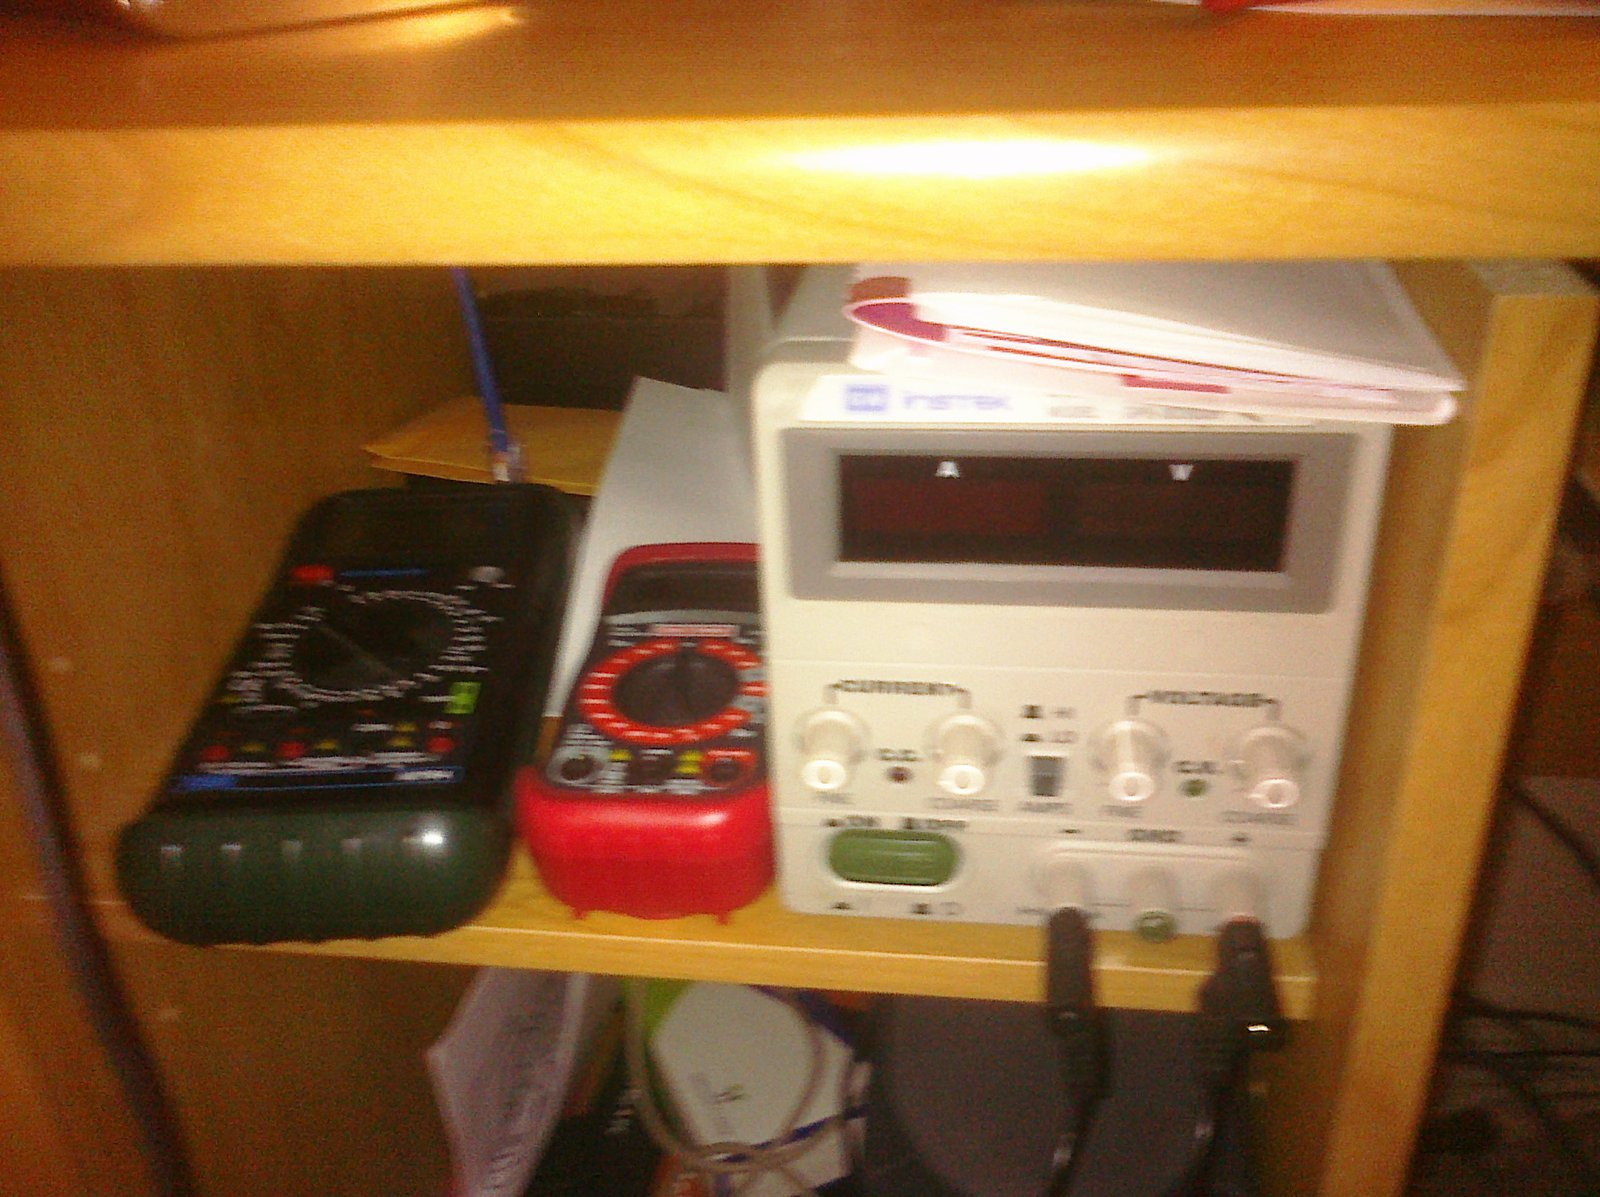 DC power supply and a few multimeters